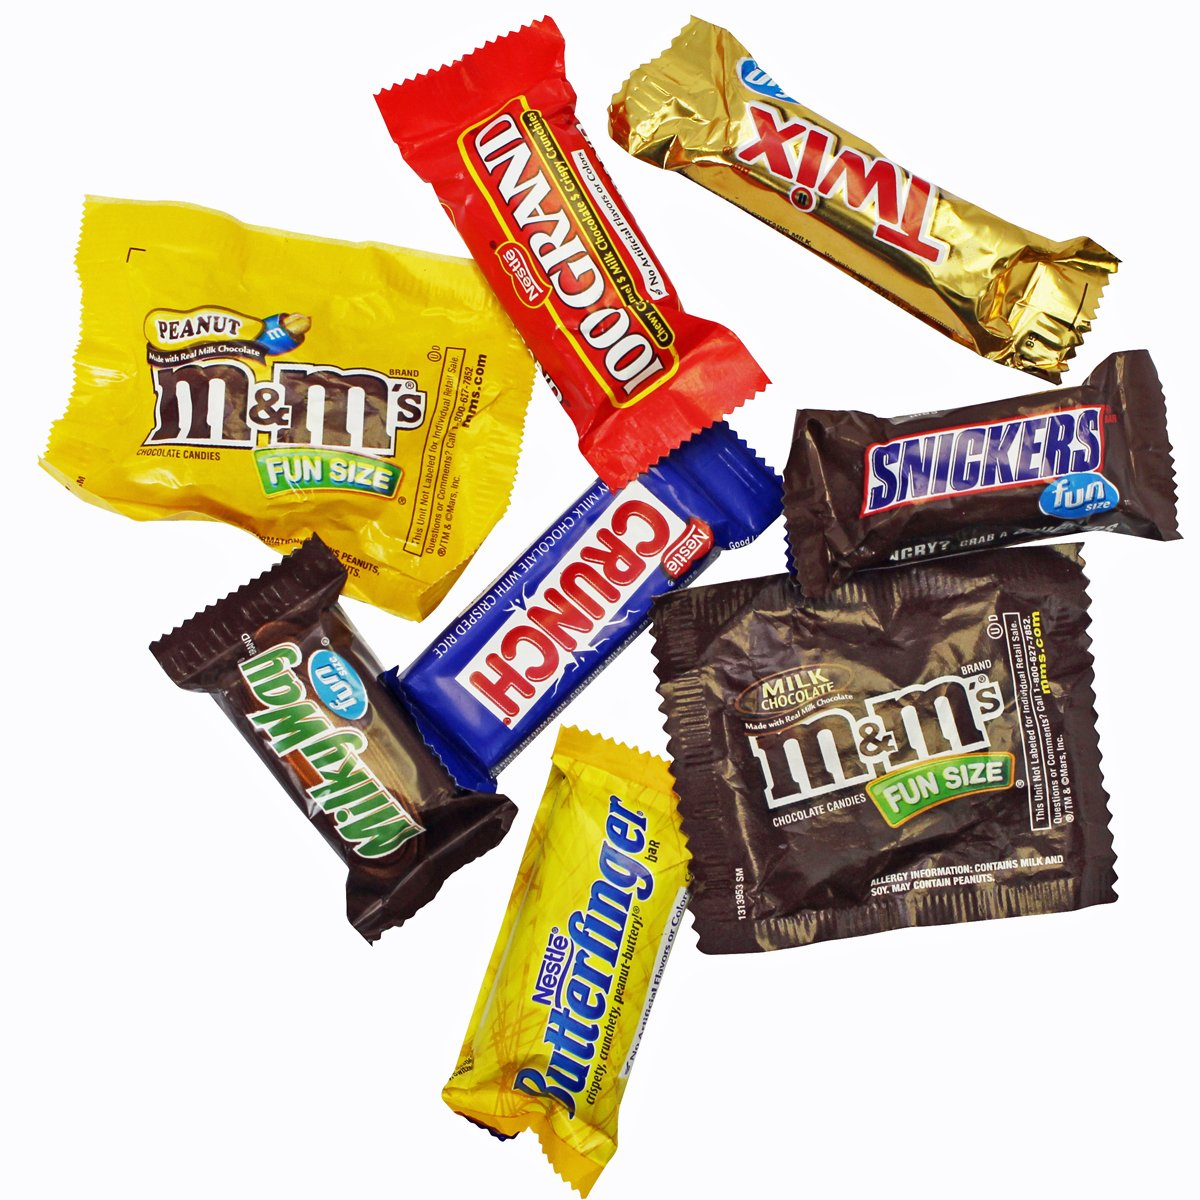 Chocolate Variety Pack - Fun Size Candy - All Your Favorite Chocolate Bars Including M&M, Snickers, Twix and More In 6x6x6 Bulk Box, 3.2 LB by A Great Surprise (Image #3)